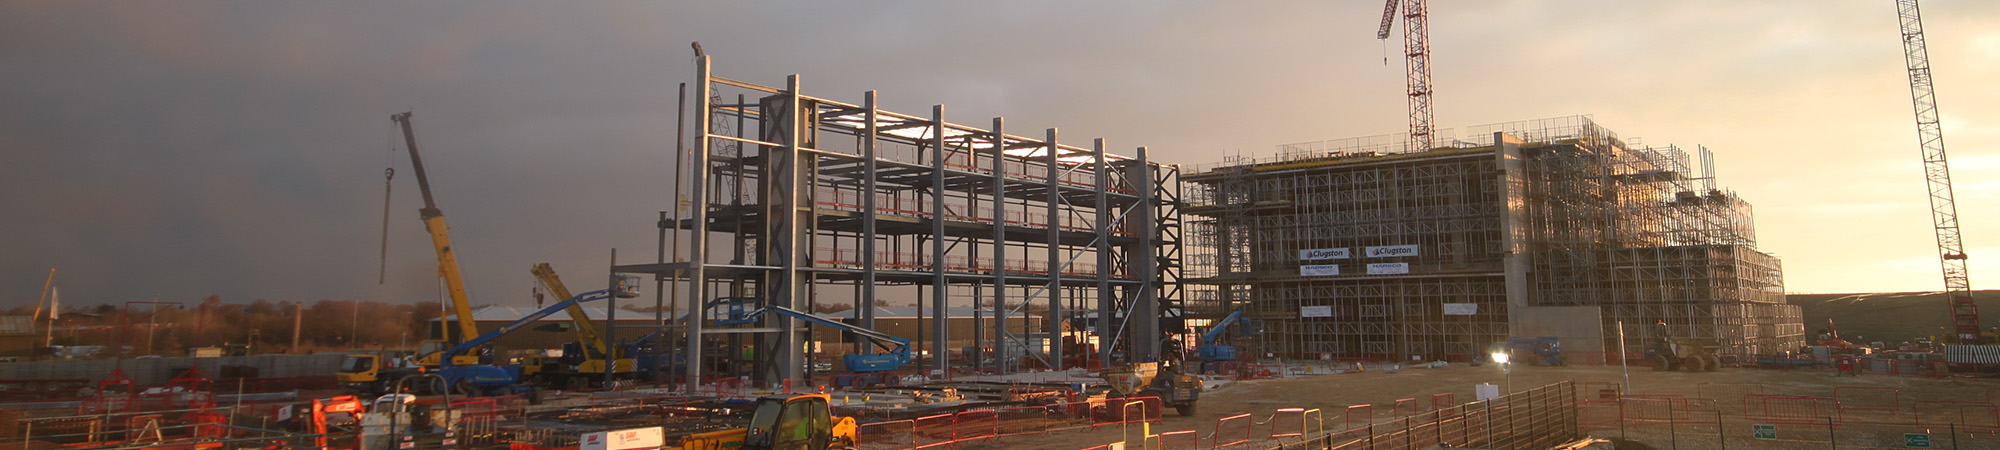 Lincolnshire EfW Facility under construction